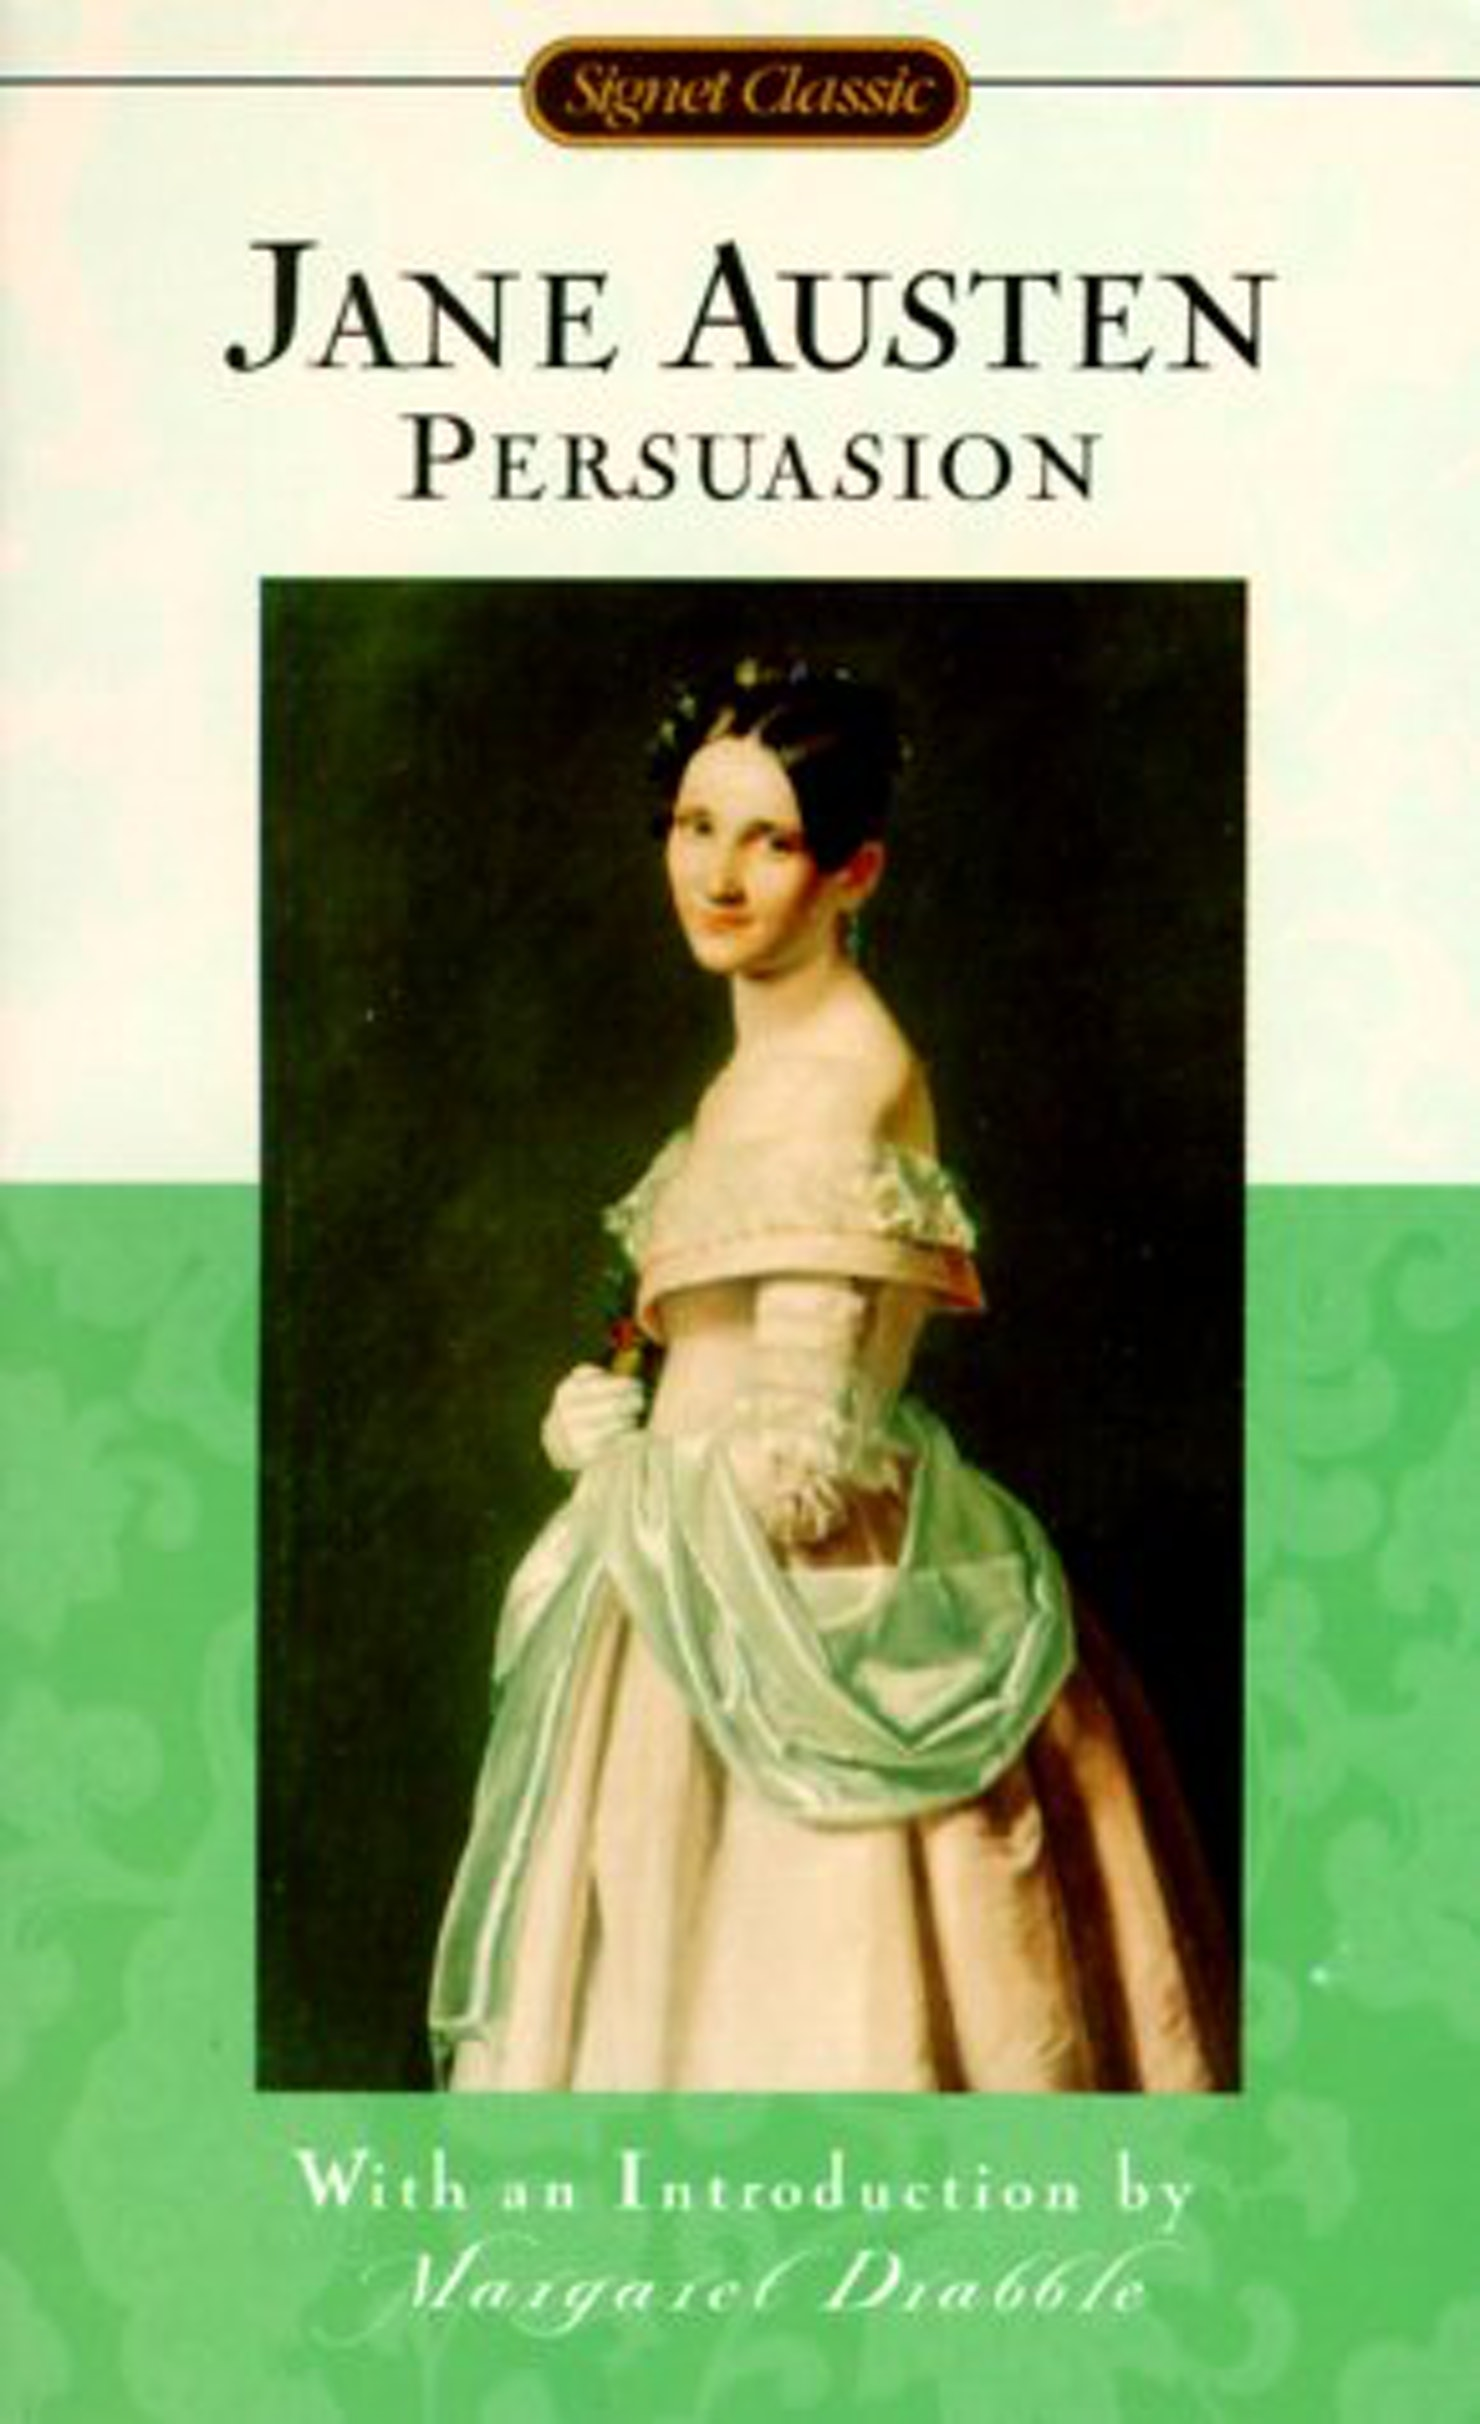 a literary analysis of persuasion by jane austen Persuasion analysis literary devices in persuasion symbolism, imagery, allegory jane austen was a grand master of the devastating turn of phrase.